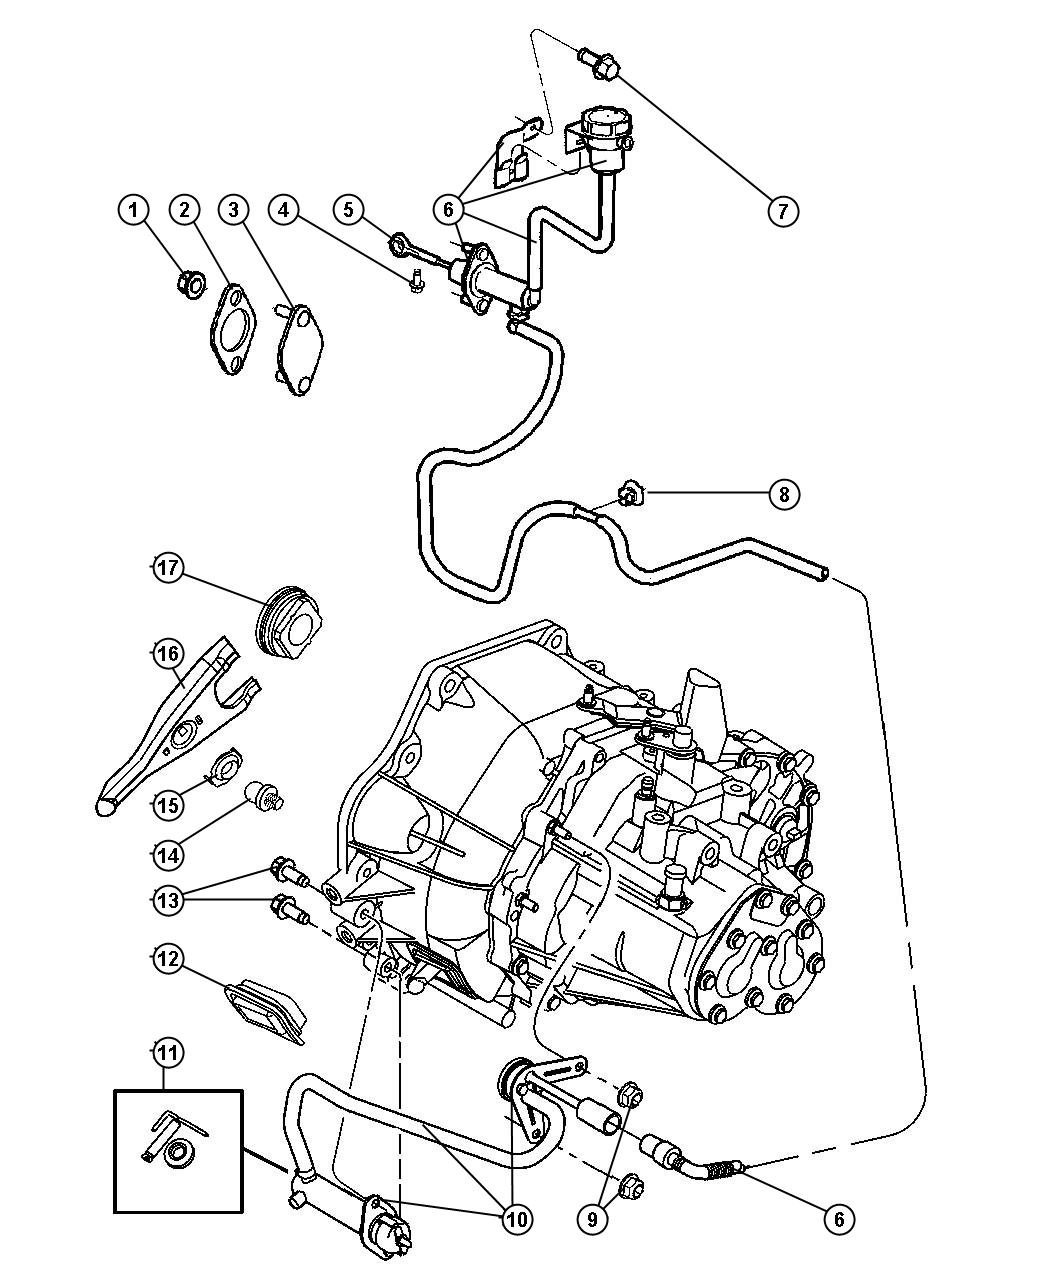 hight resolution of pt cruiser forum 2002 pt cruiser clutch diagram